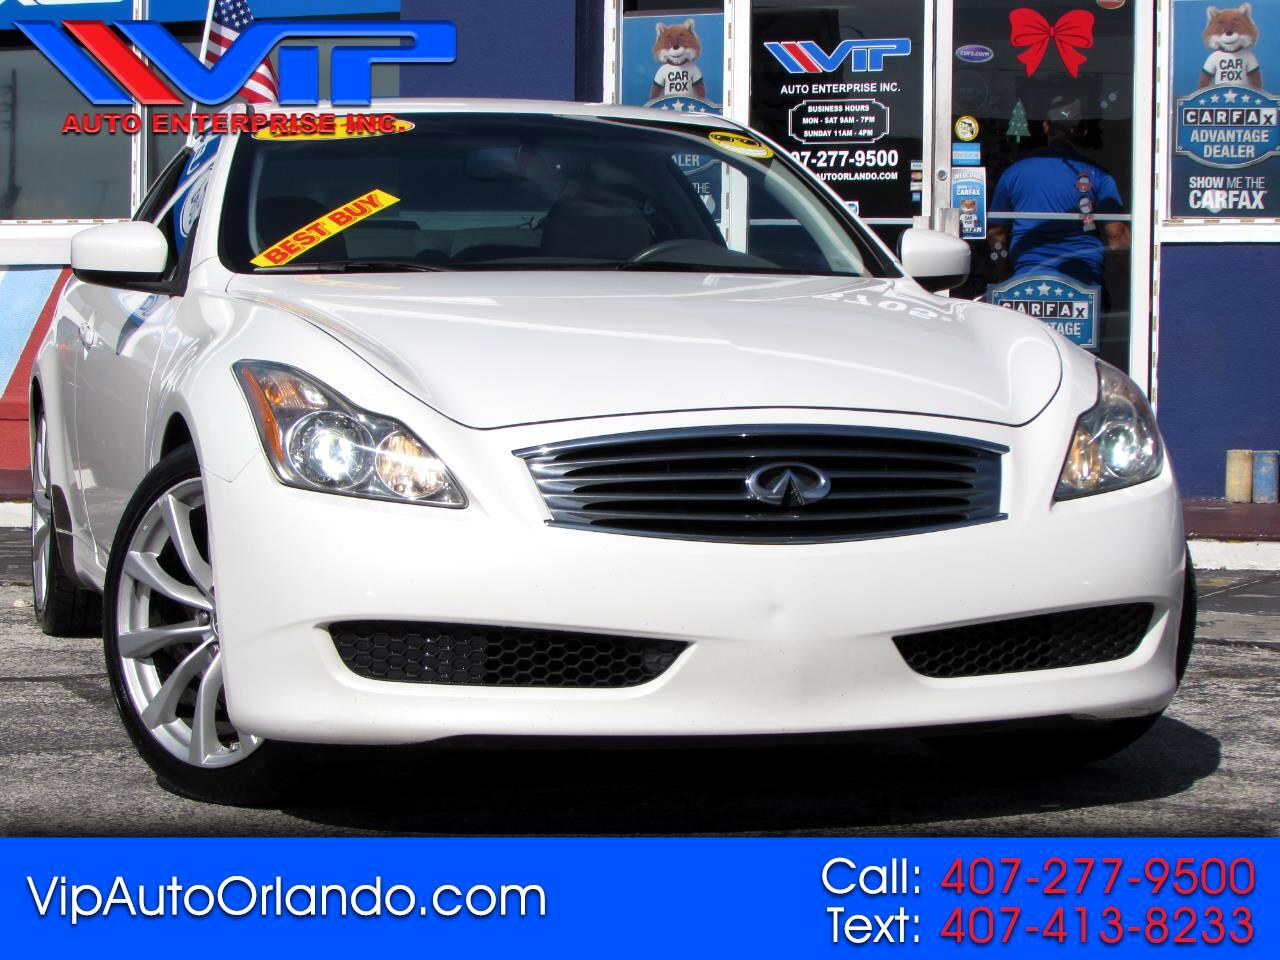 Infiniti G37 Coupe 2dr Journey RWD 2010